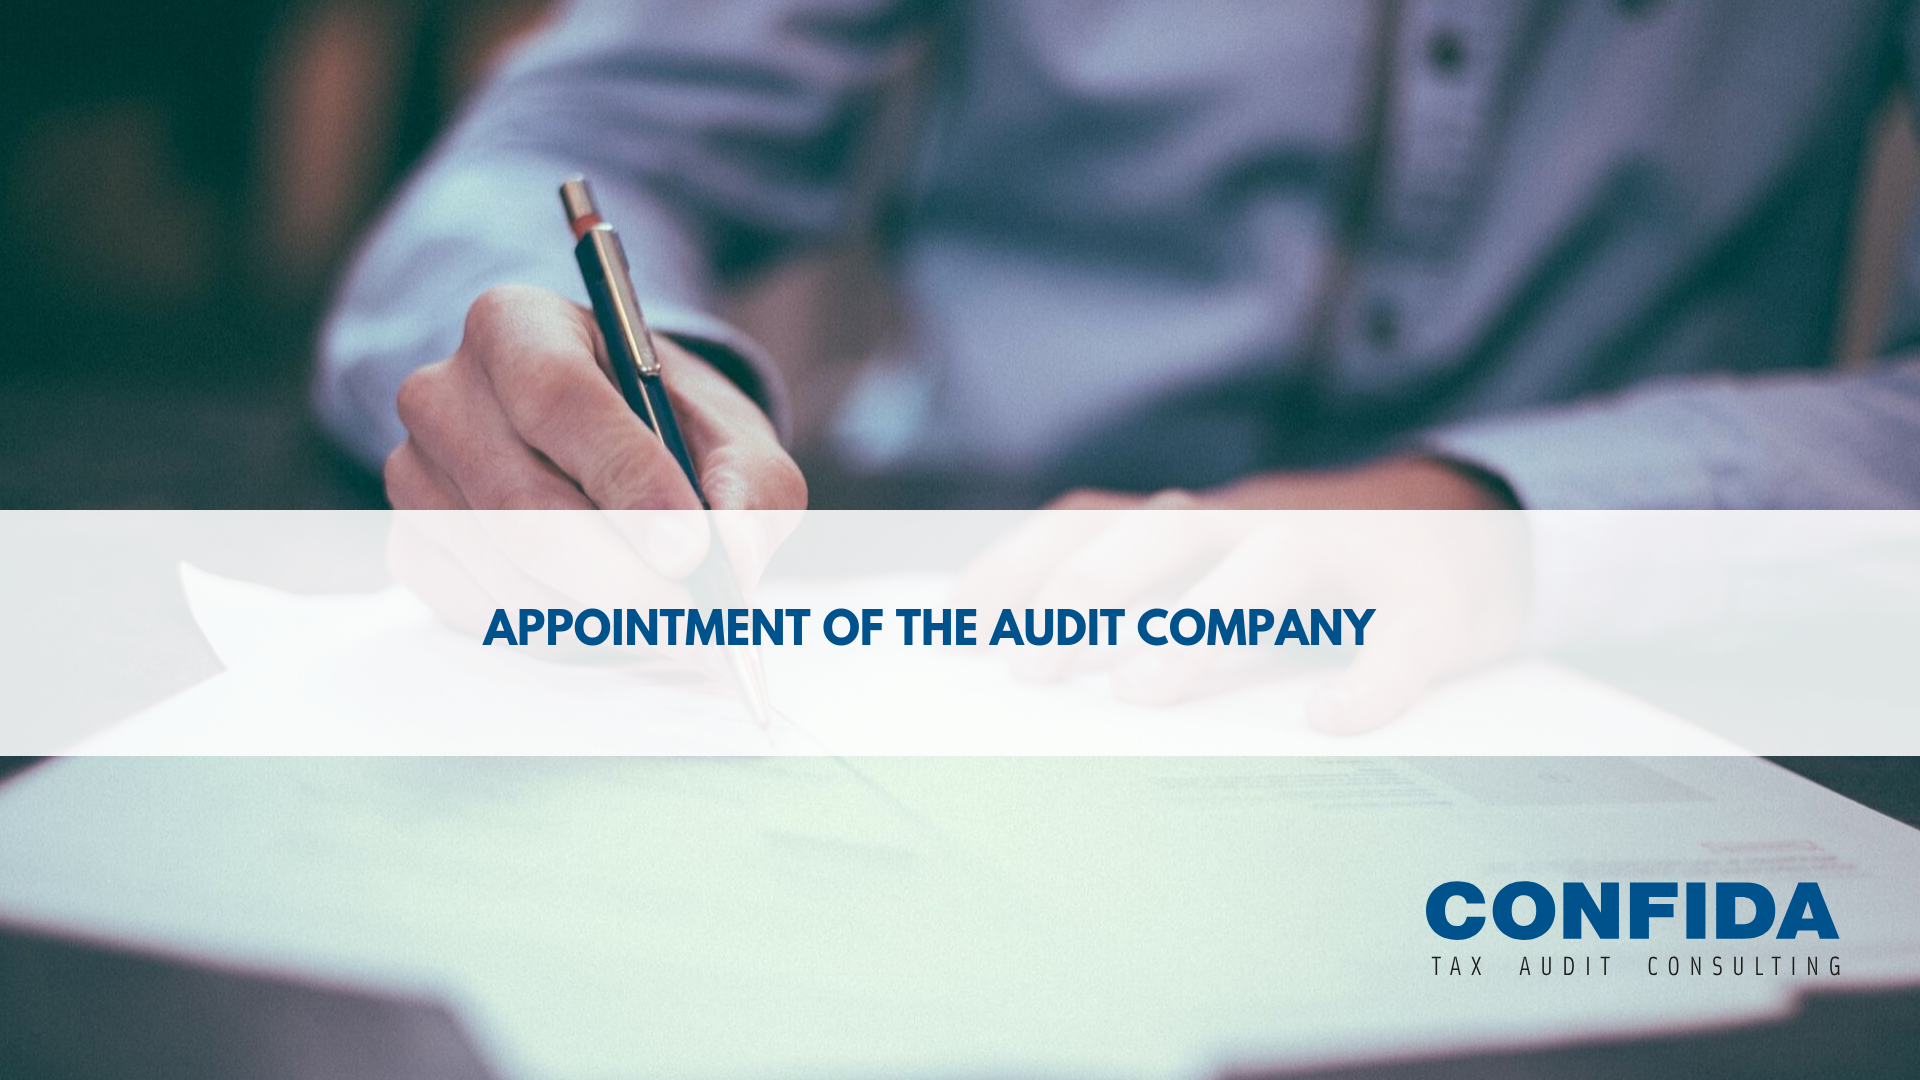 Appointment of the audit company